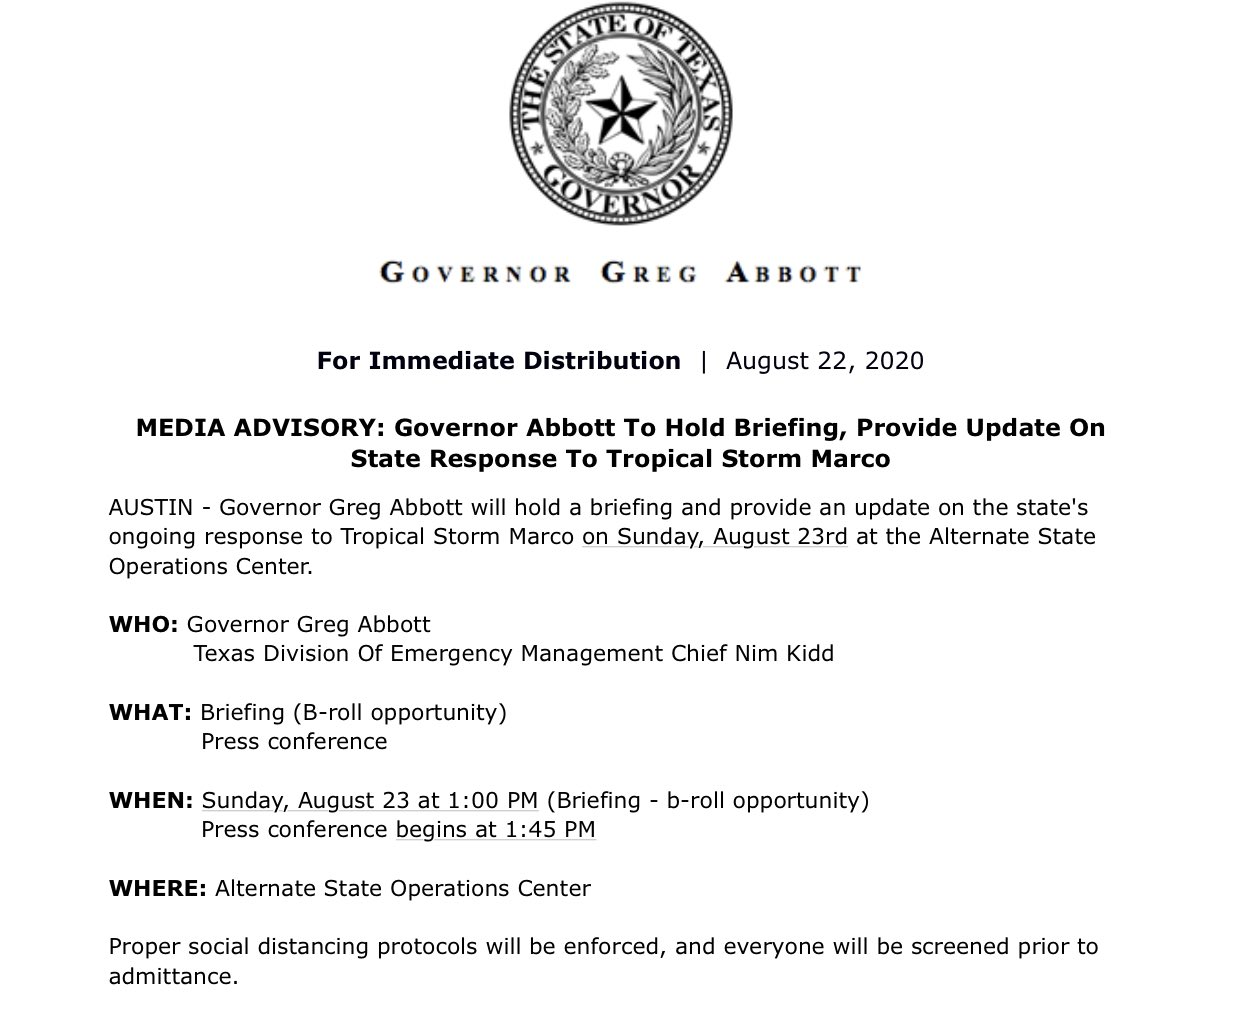 Texas Division of Emergency Management: Governor Abbott to Hold Briefing, Provide Update on State Response to Tropical Storm Marco 1